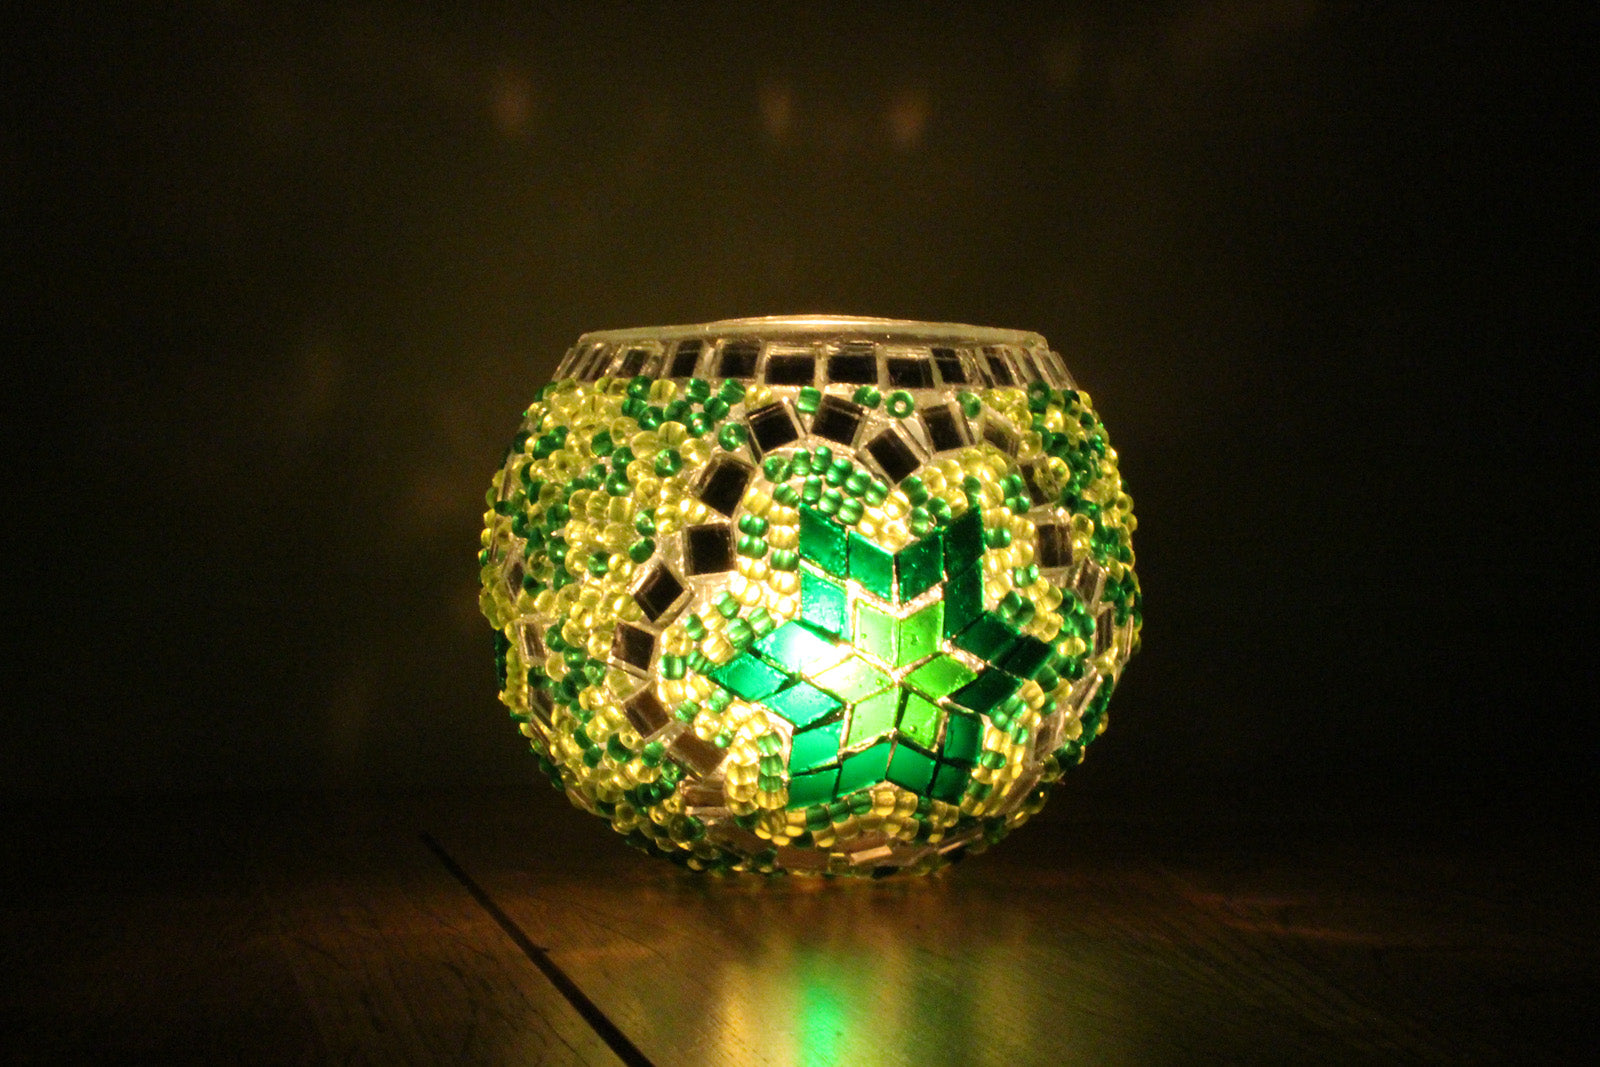 Hand Made Green Flower Mosaic Tea Light Holder